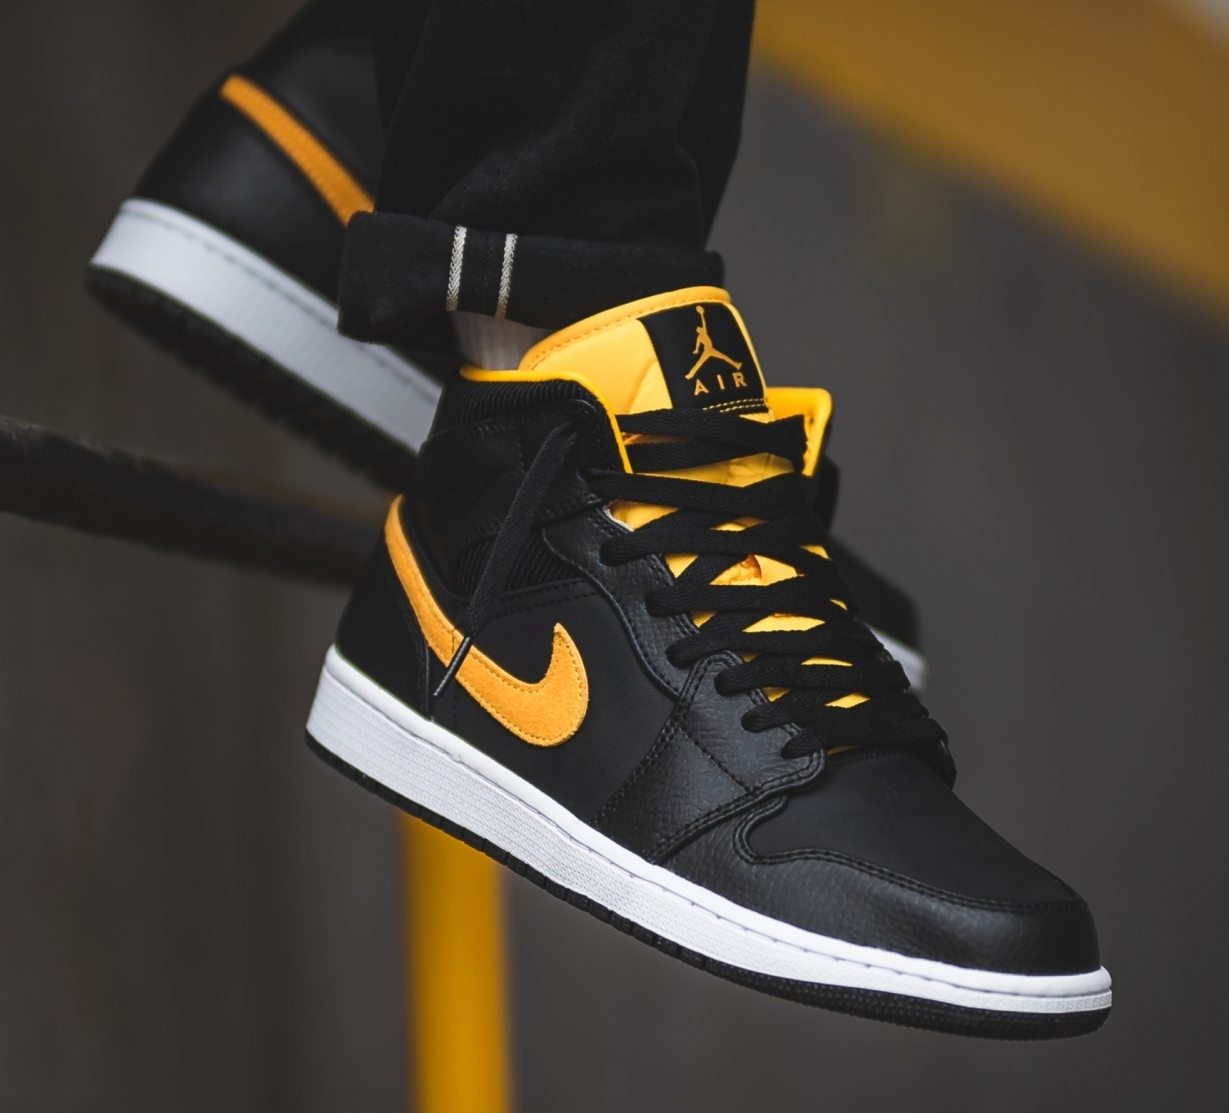 0652720c3 Now Available  Air Jordan 1 Mid